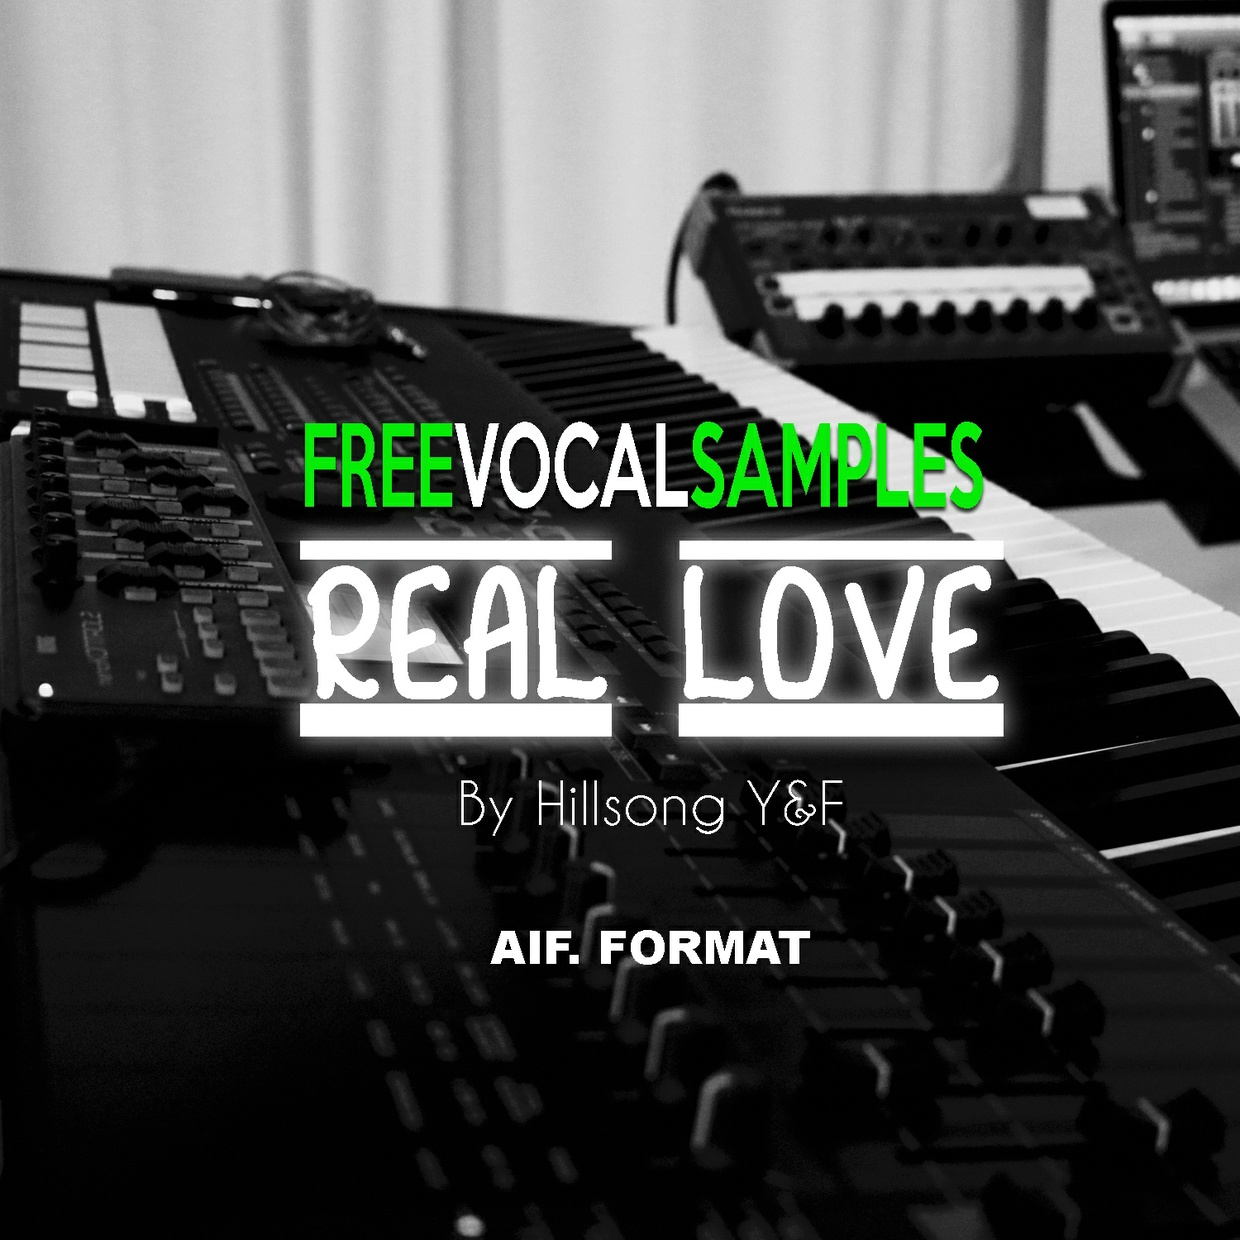 FREE VOCAL SAMPLES | REAL LOVE